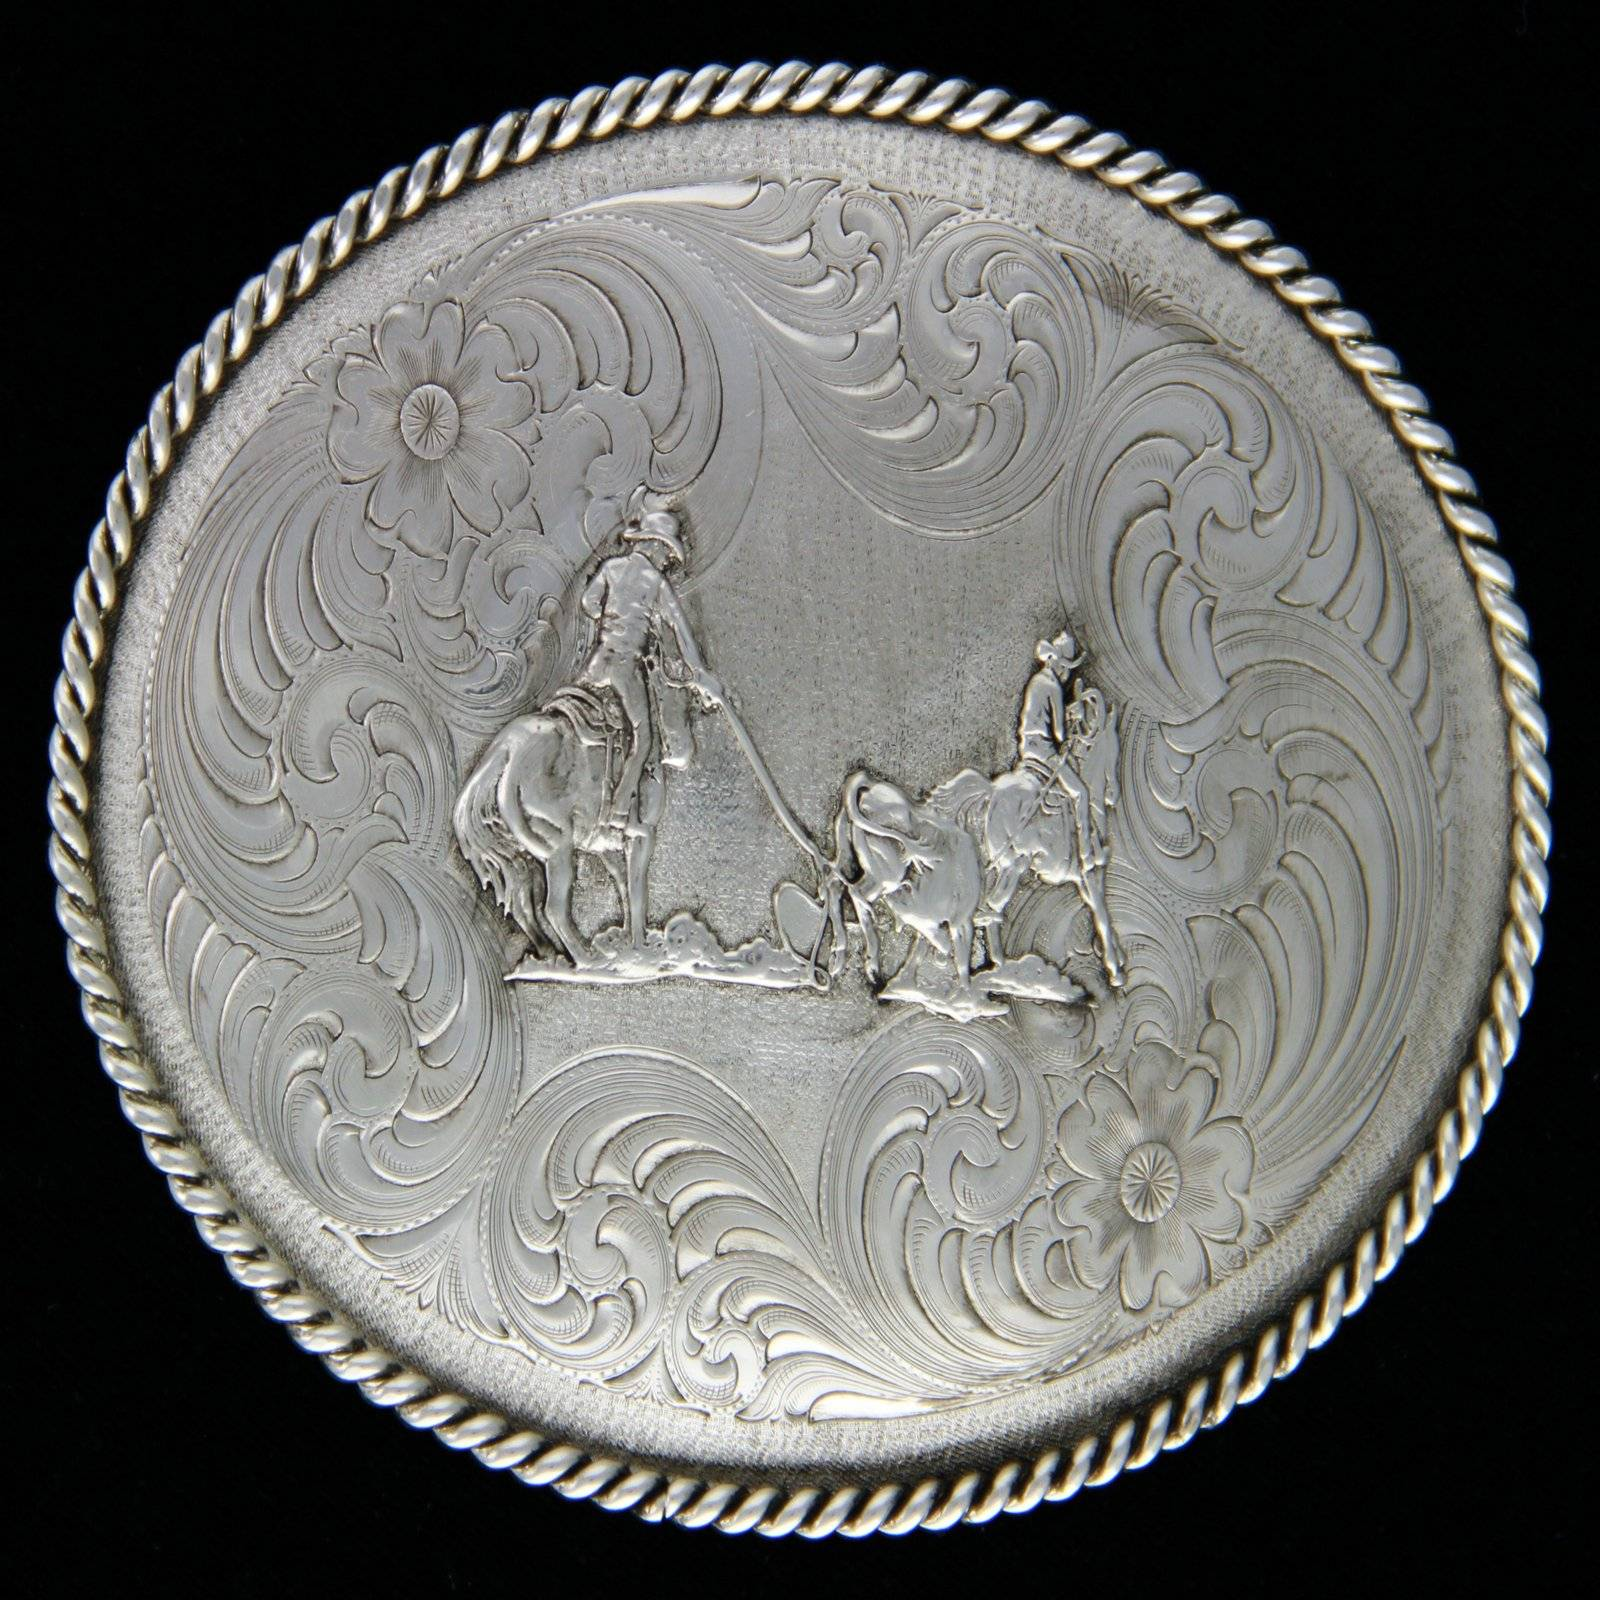 Montana Silversmiths Oval Engraved Buckle With Team Ropers